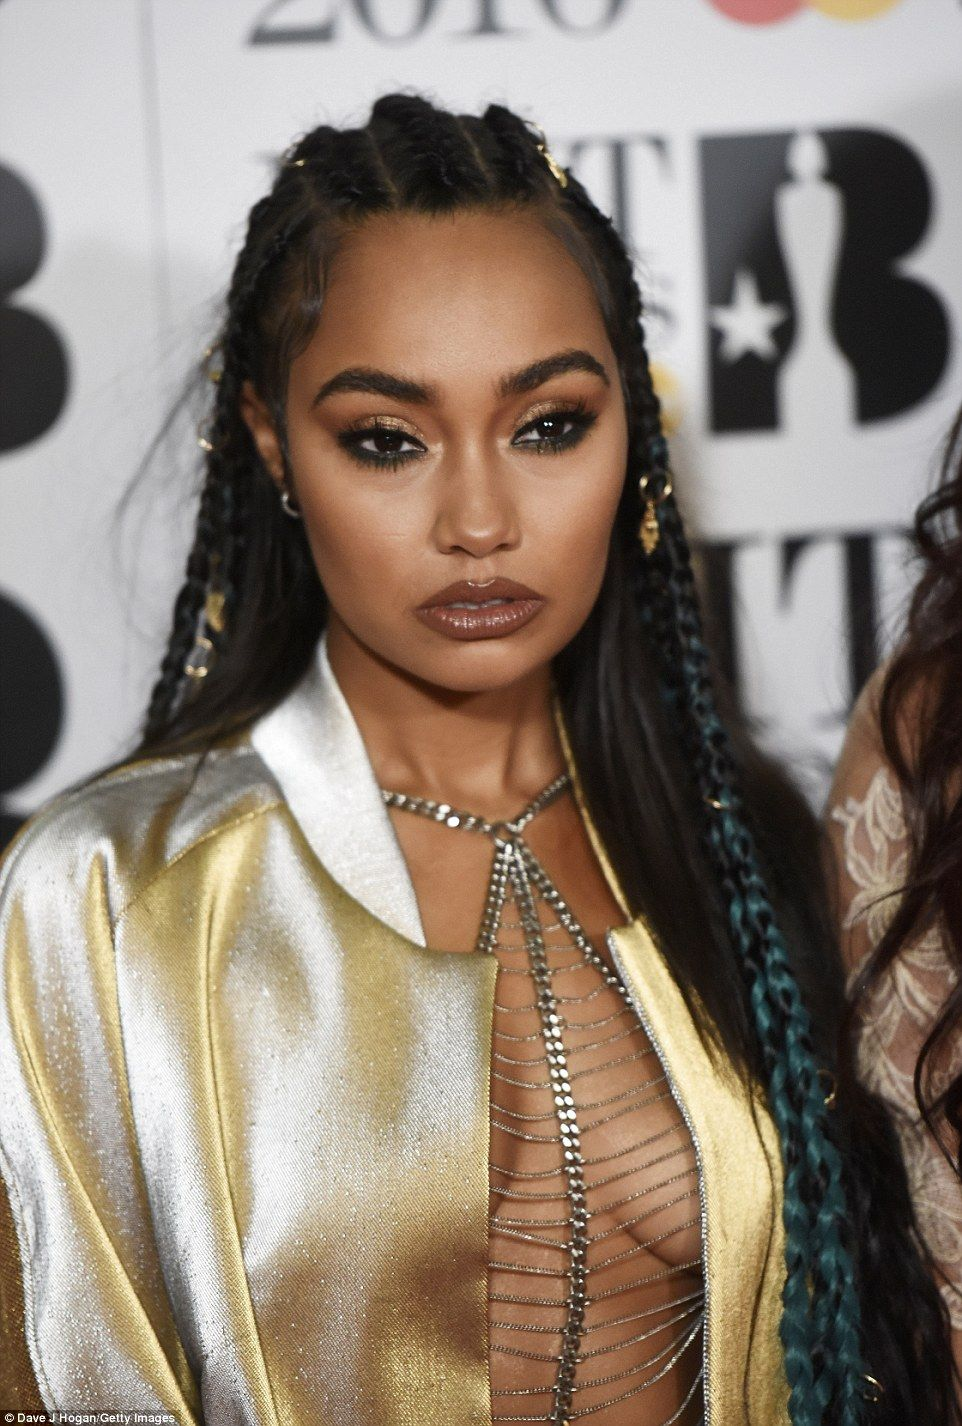 Celebrites Leigh-Anne Pinnock nude photos 2019